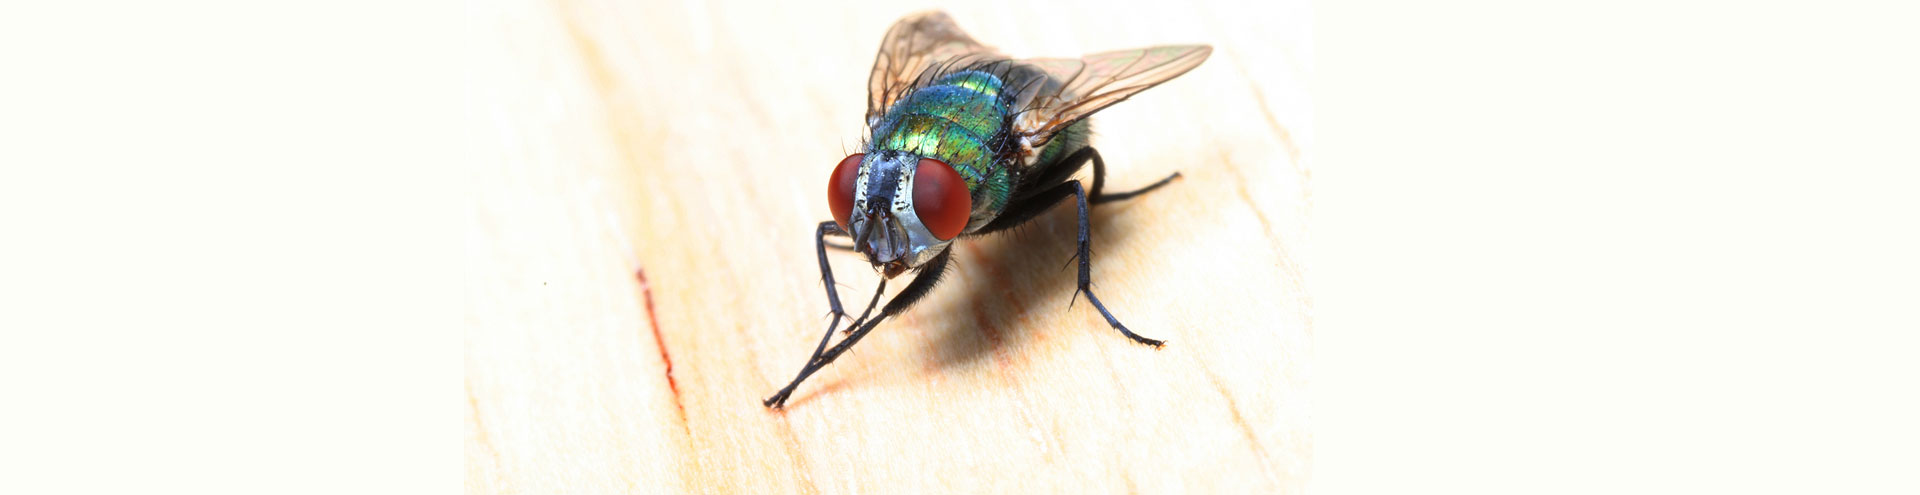 A common fly with large red eyes rubbing its front two legs together.